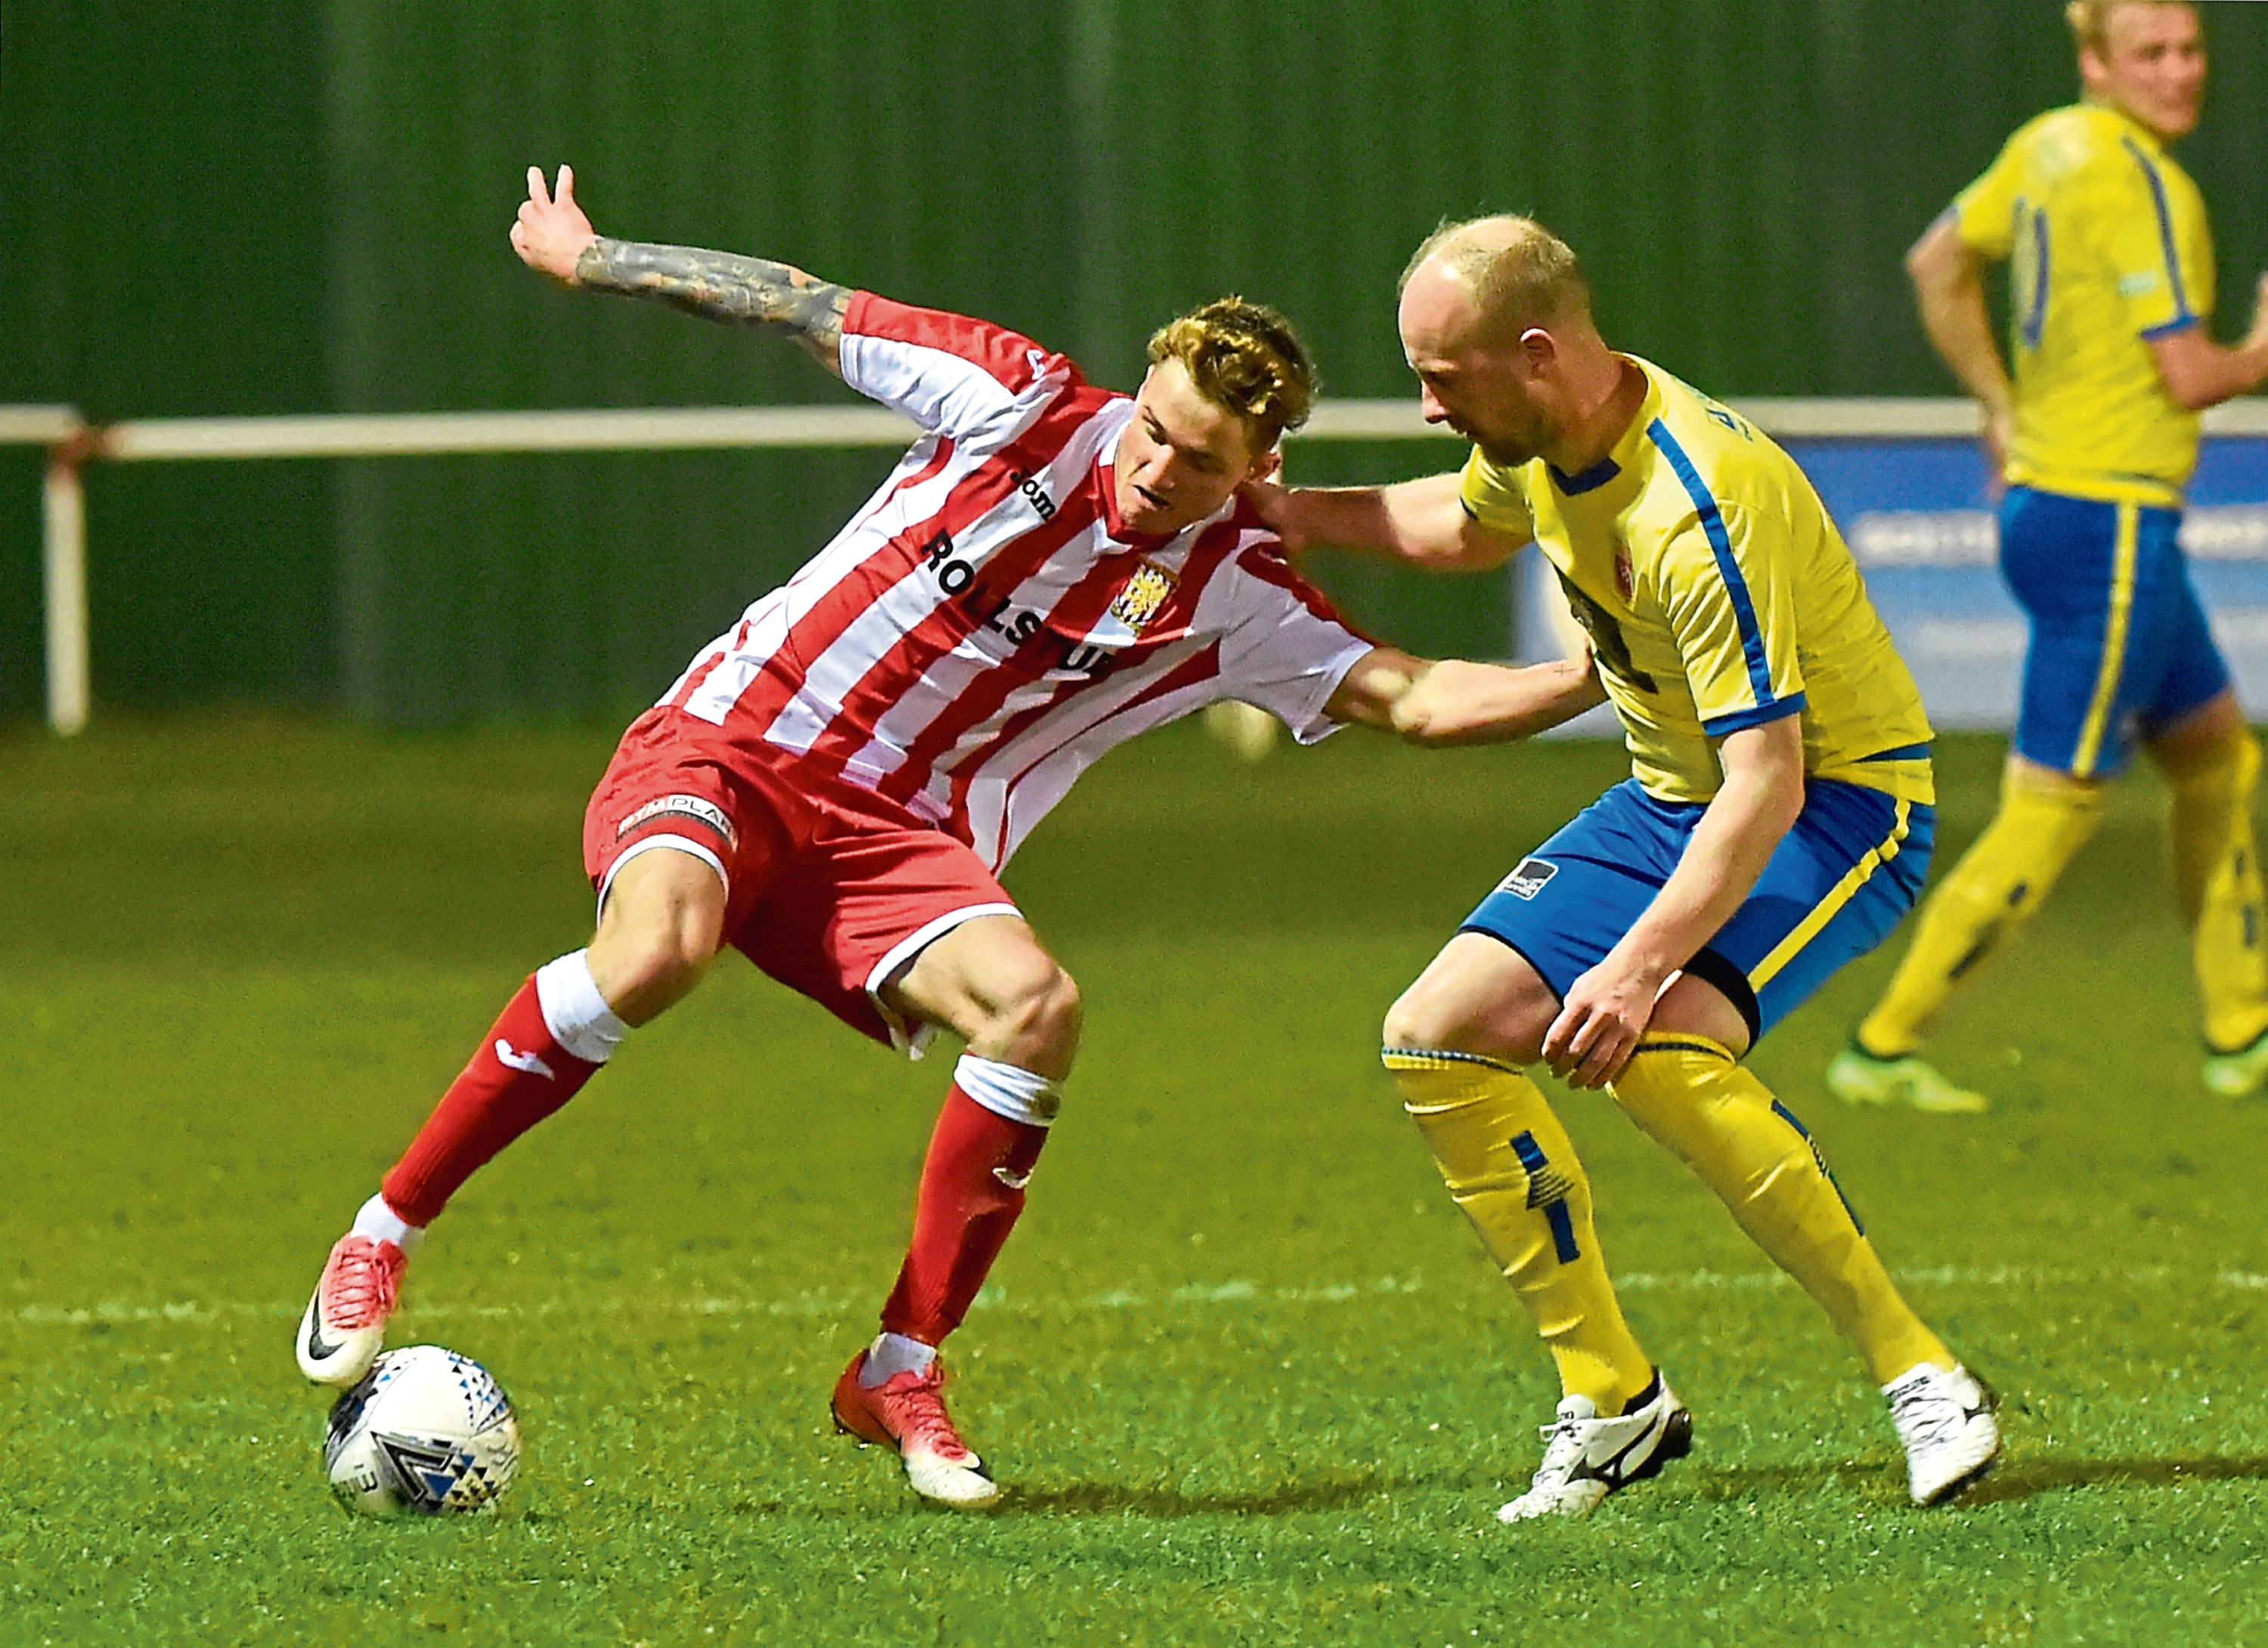 Aaron Norris in action for Formartine.